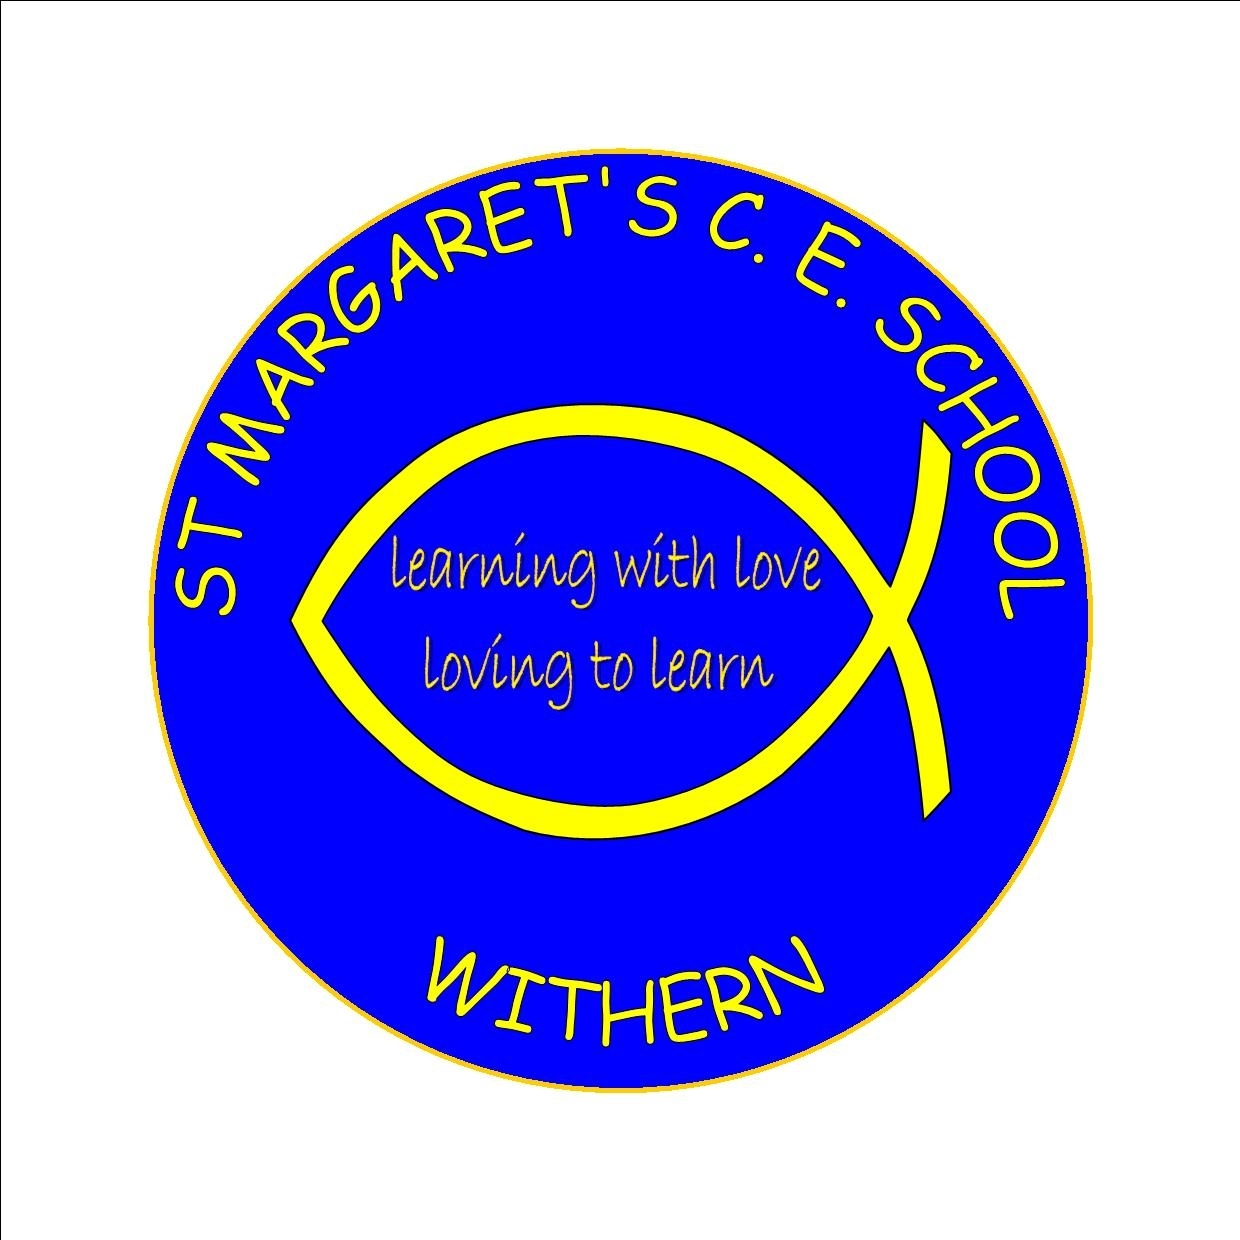 Withern St Margaret's Primary School